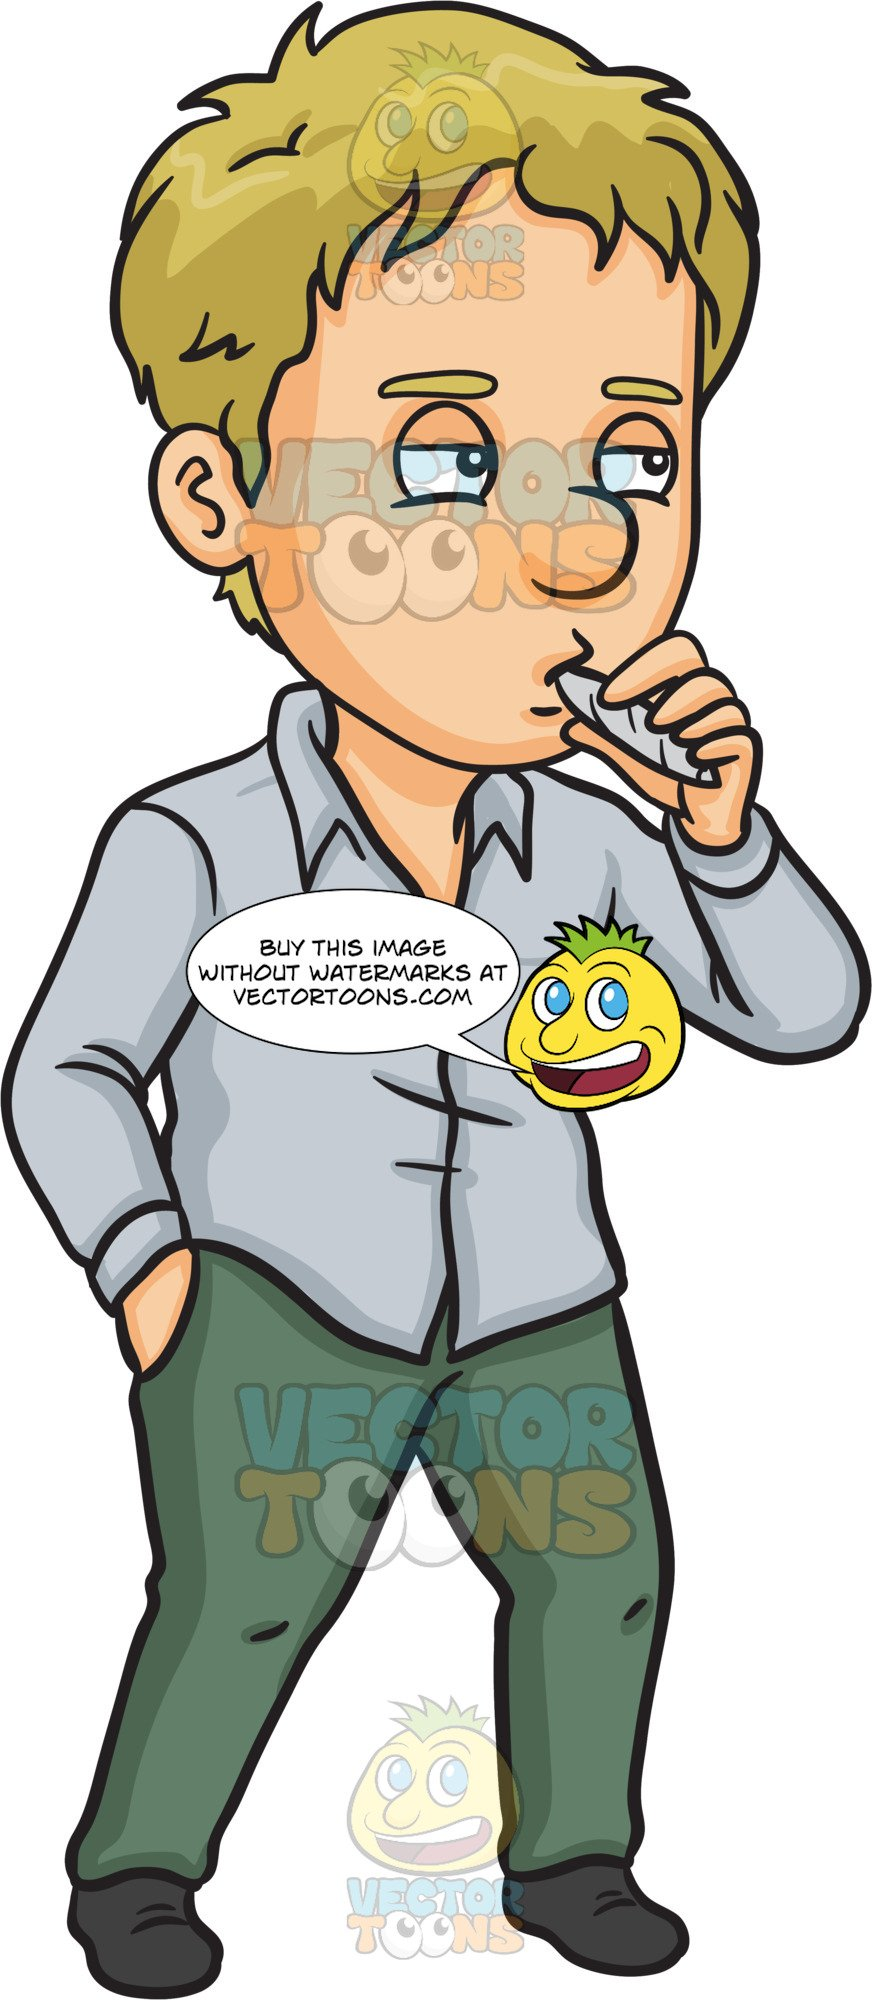 Smoking clipart guy, Smoking guy Transparent FREE for.